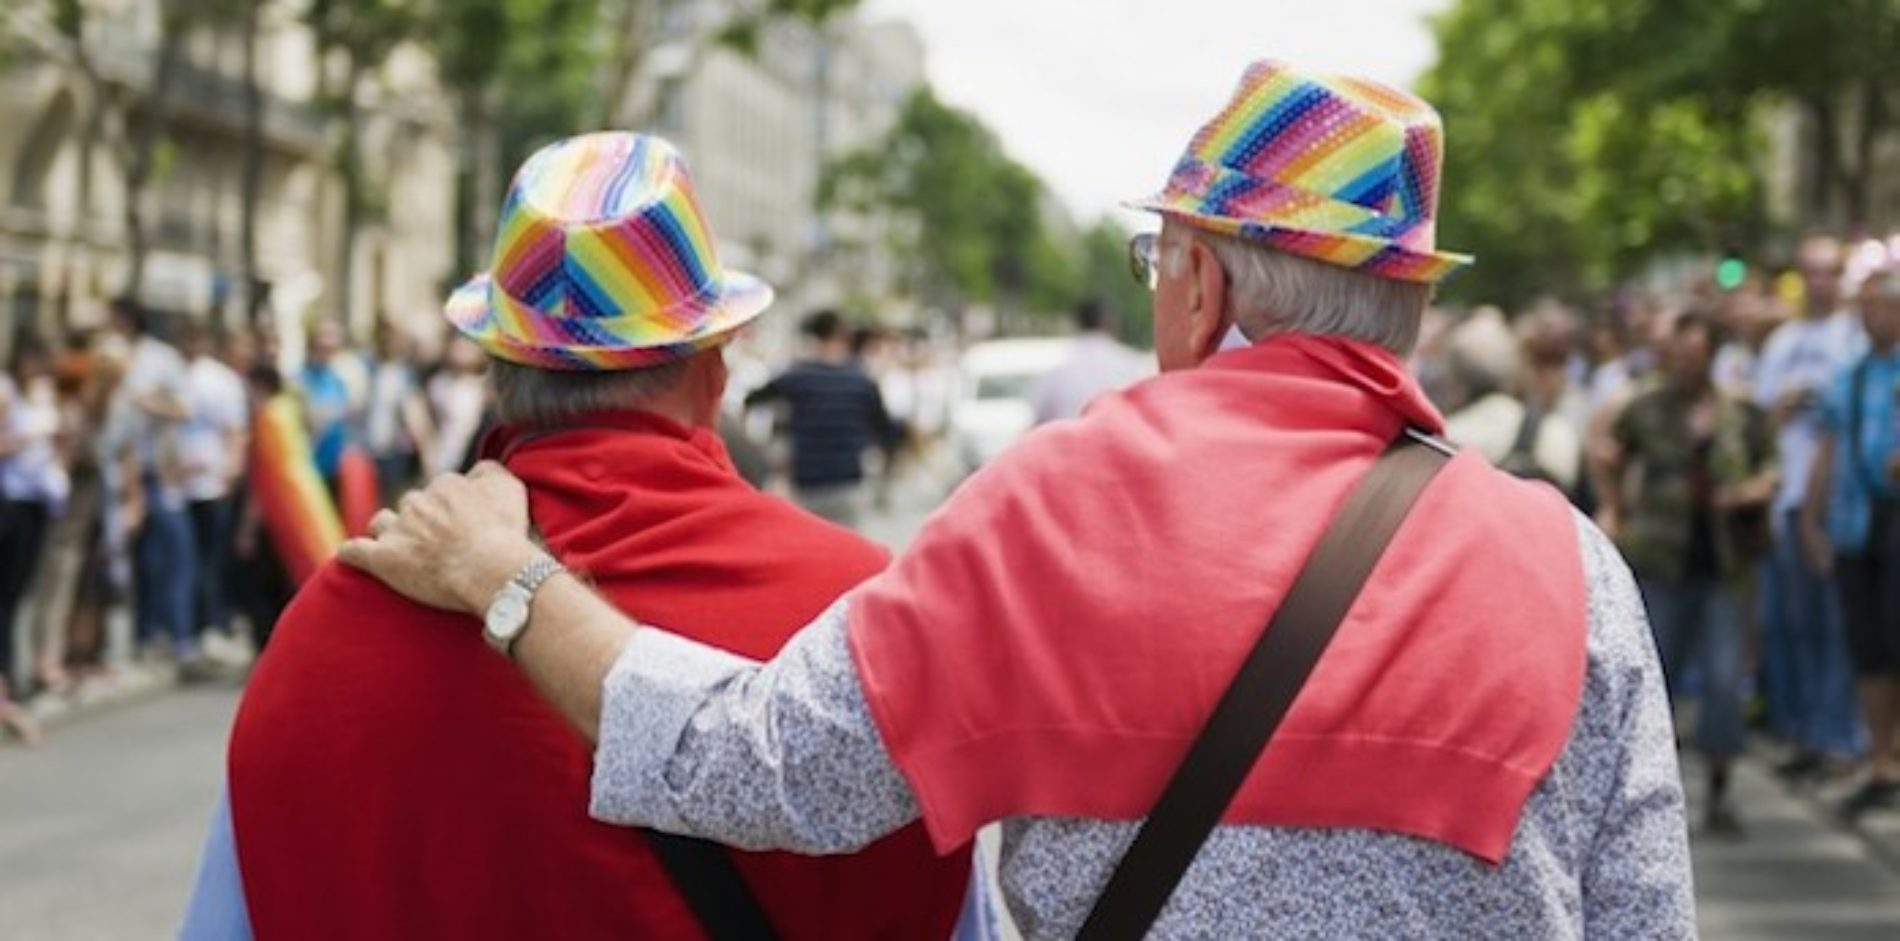 An Open Letter To Ageist Gay Men